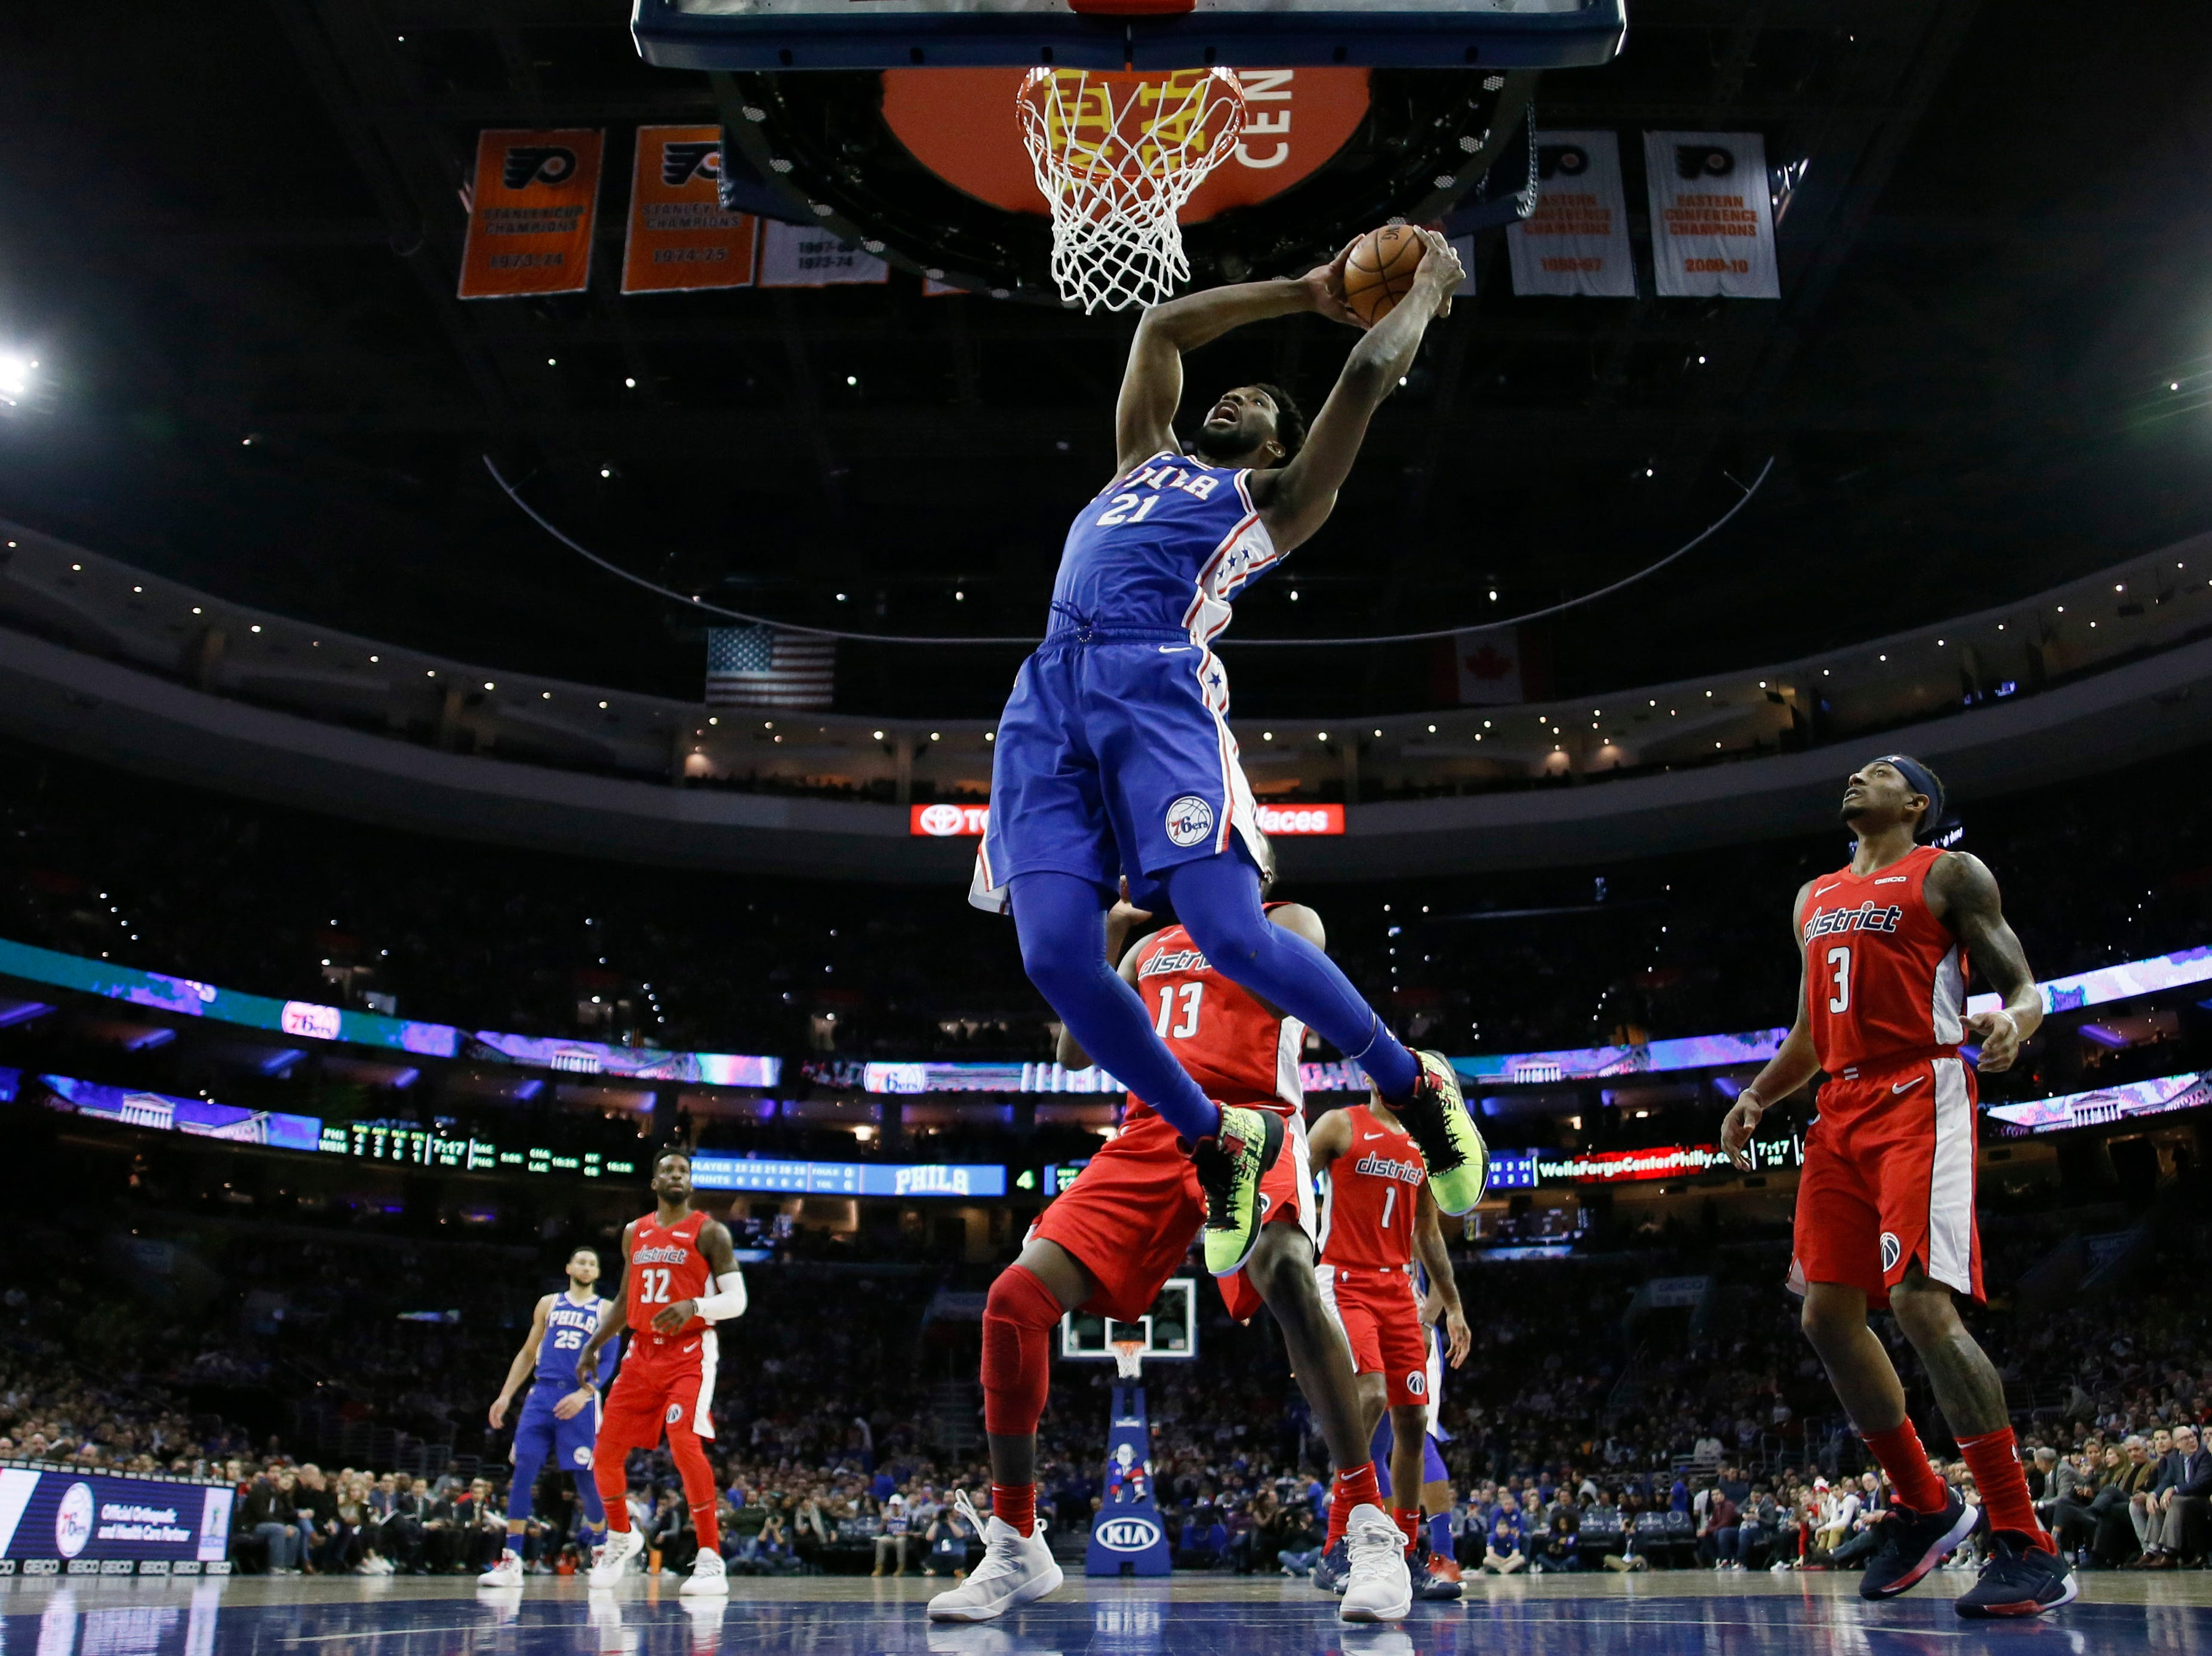 Shamet, Embiid lead 76ers to 132-115 rout of Wizards